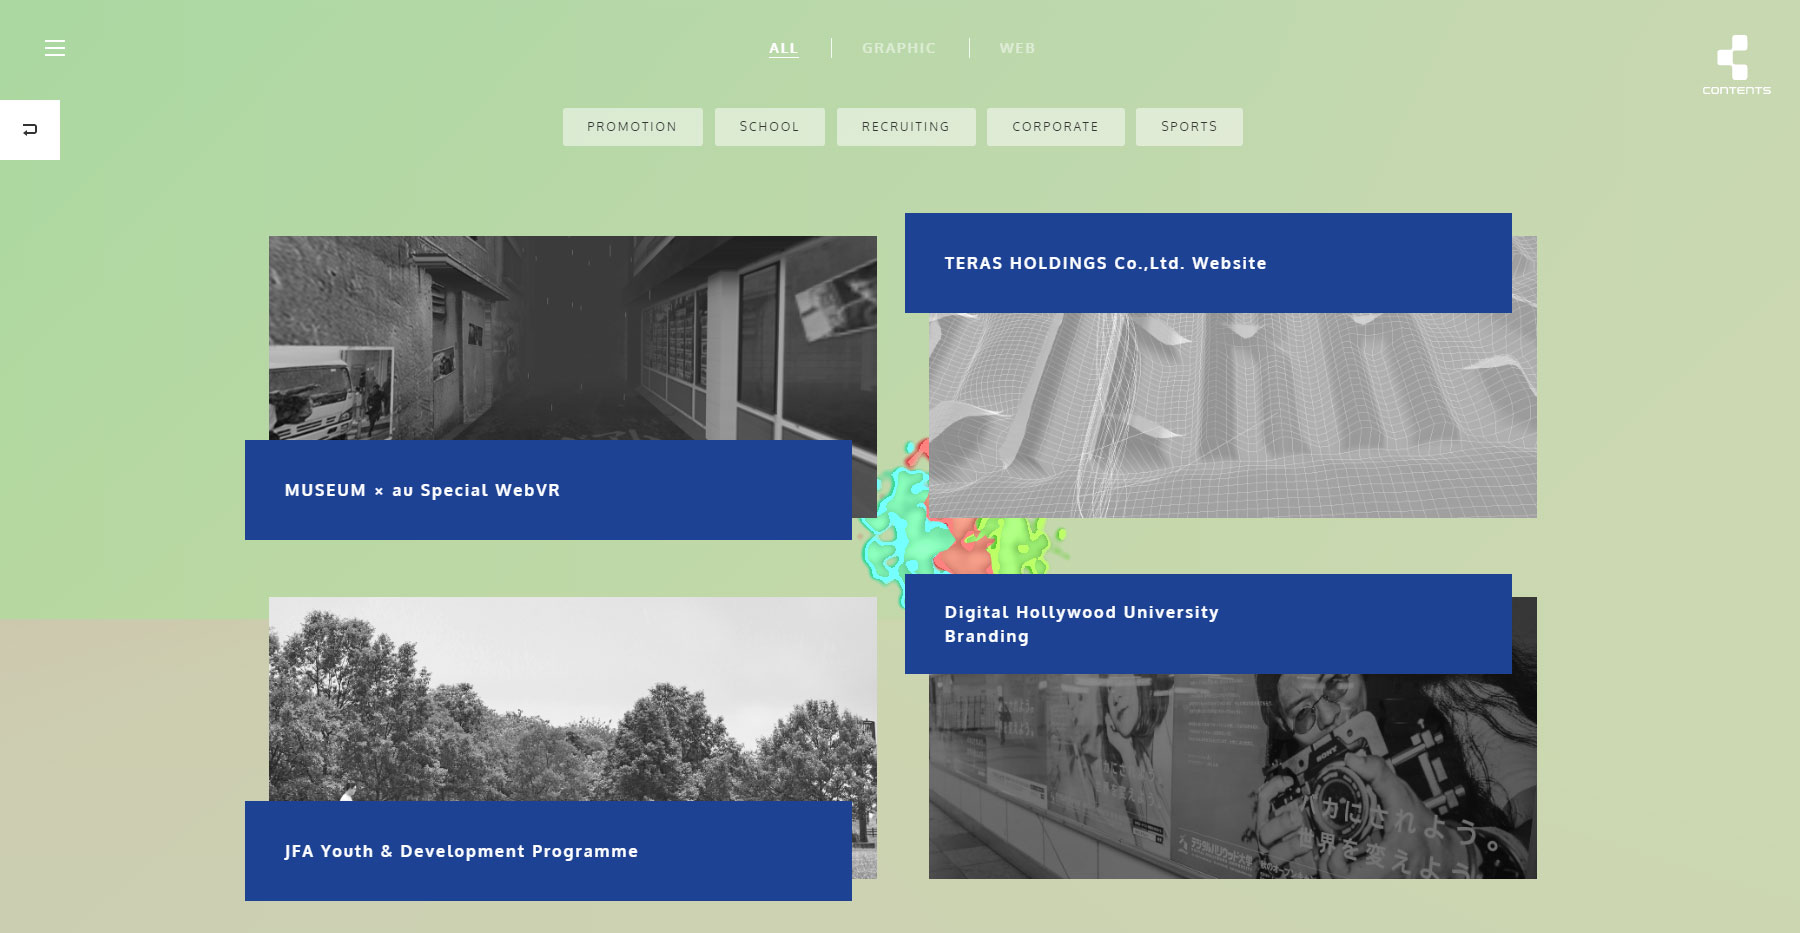 Contents Co.,Ltd - Website of the Day